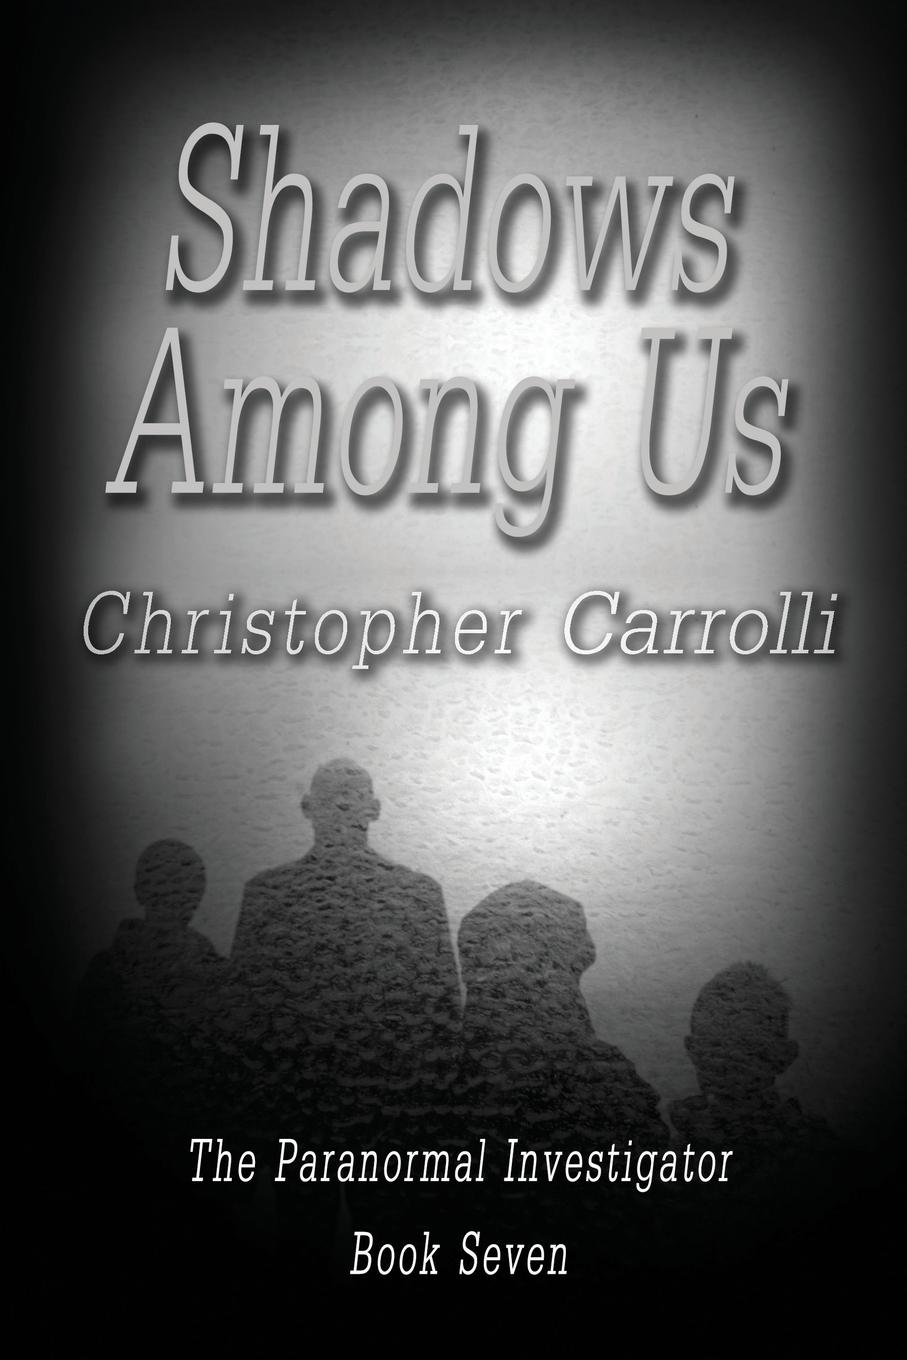 Christopher Carrolli Shadows Among Us example playing in the shadows